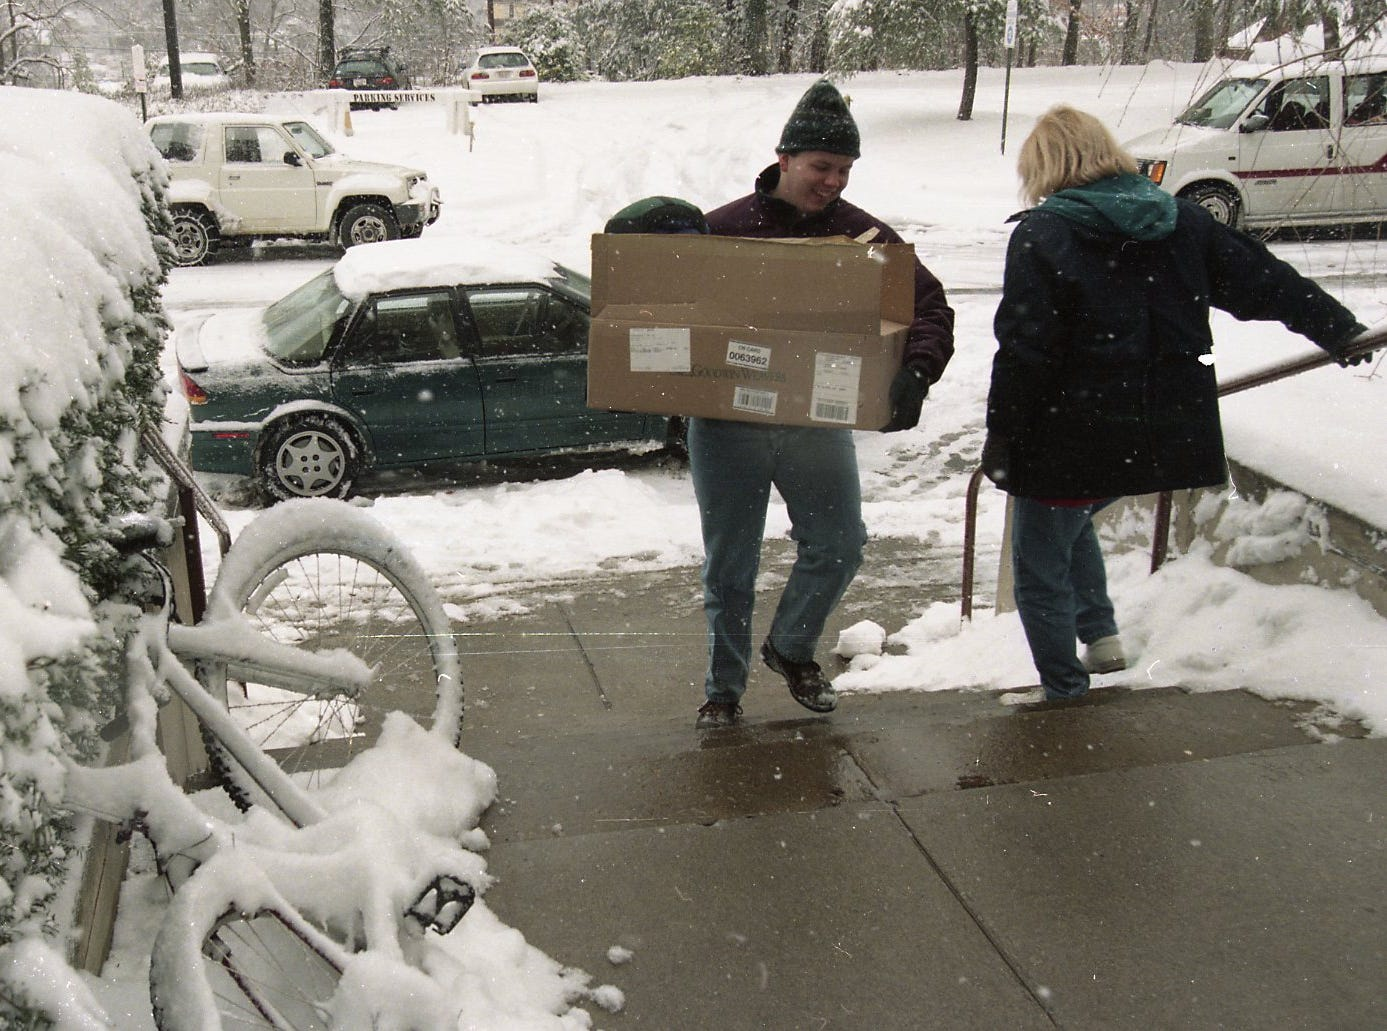 Trey Cole moves his belongings back to his UT dorm preparing for the new term. Cole came back from Memphis and was surprised to be moving back in the snow.